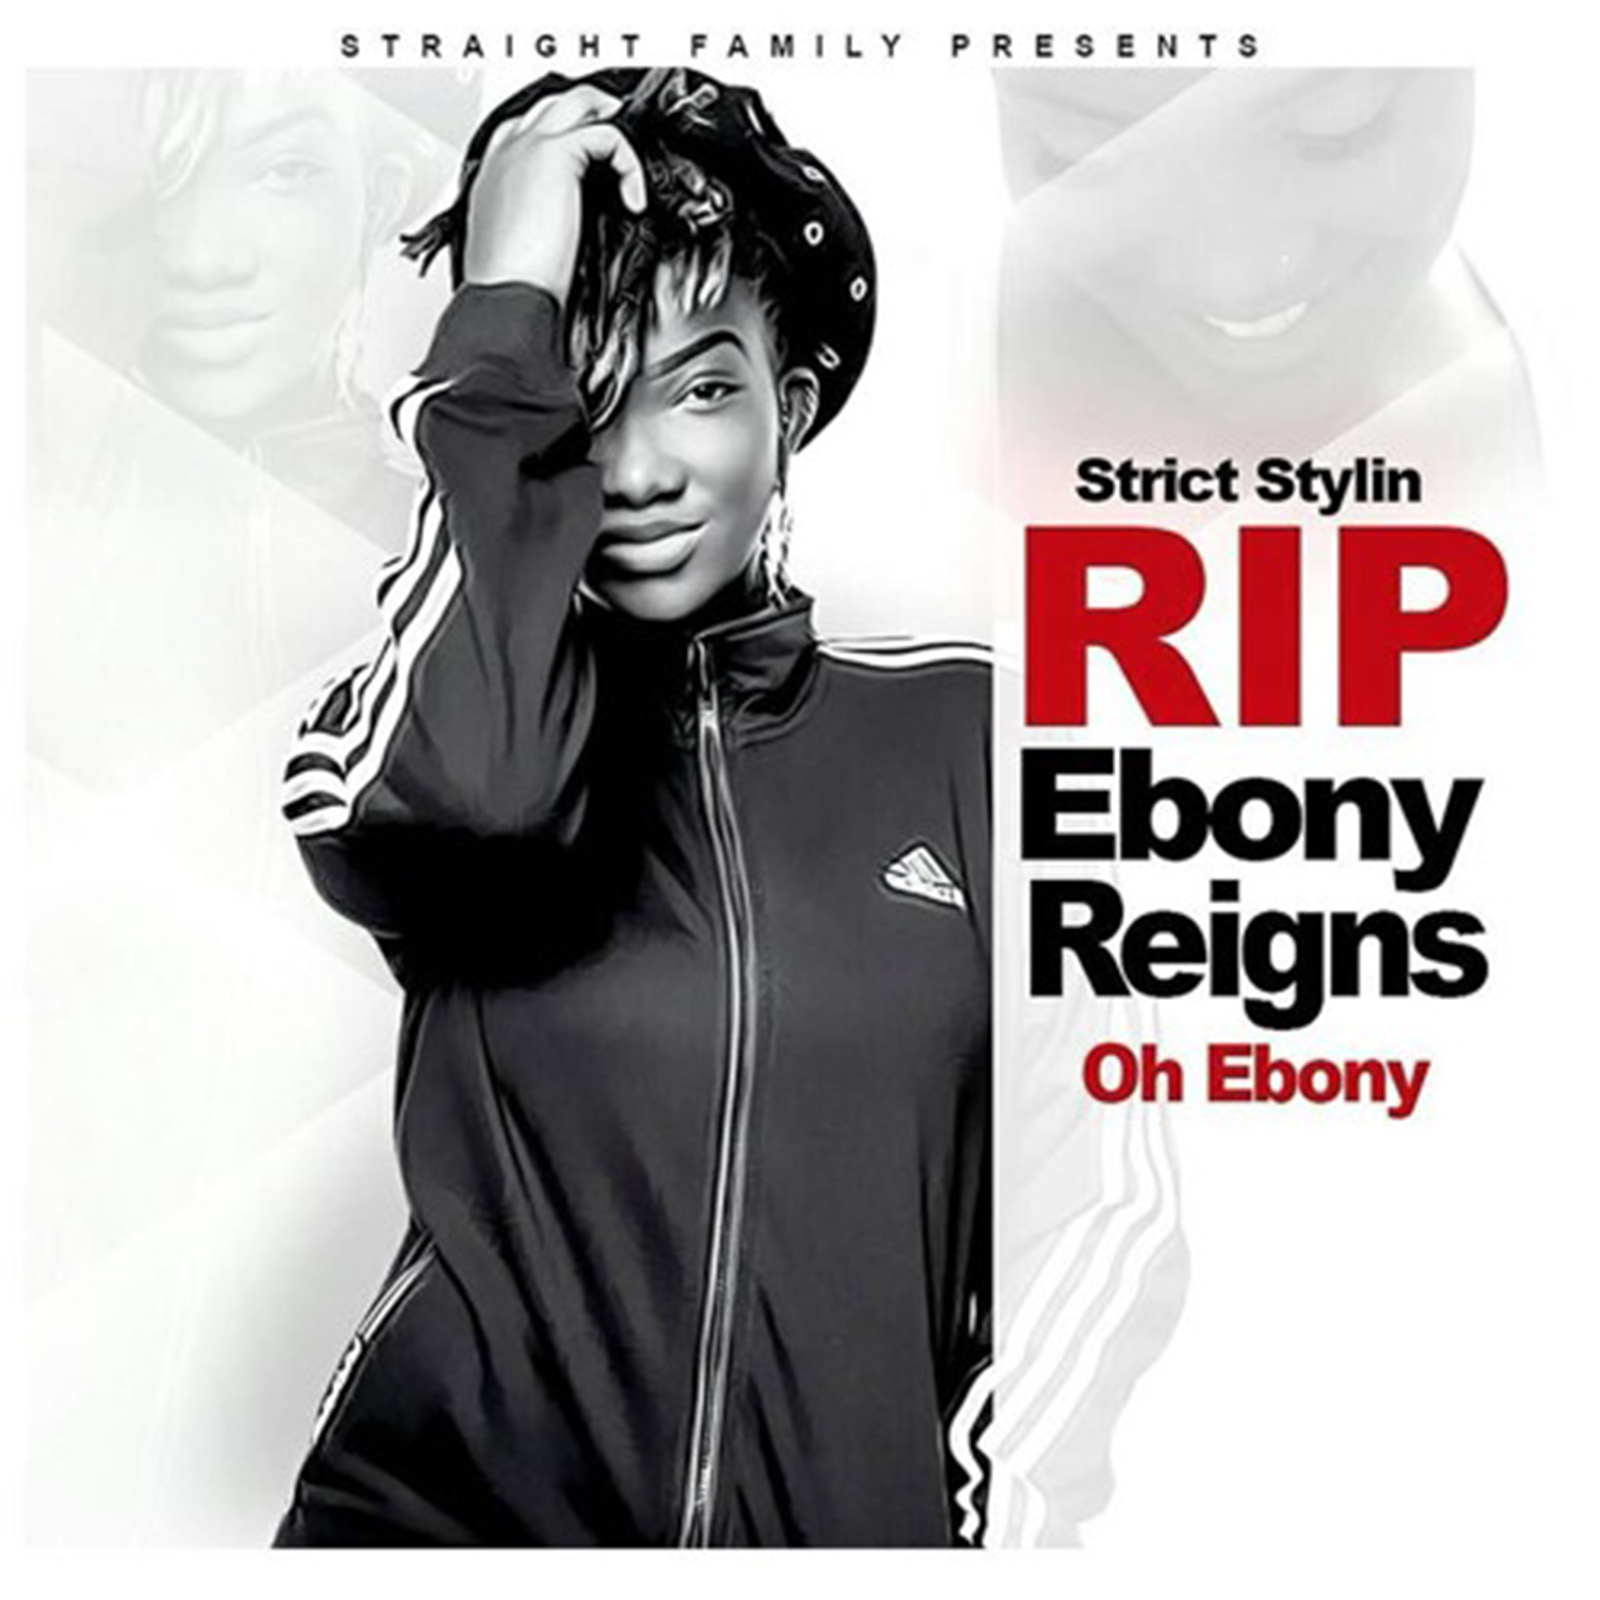 Oh Ebony R.I.P by Strict Stylin